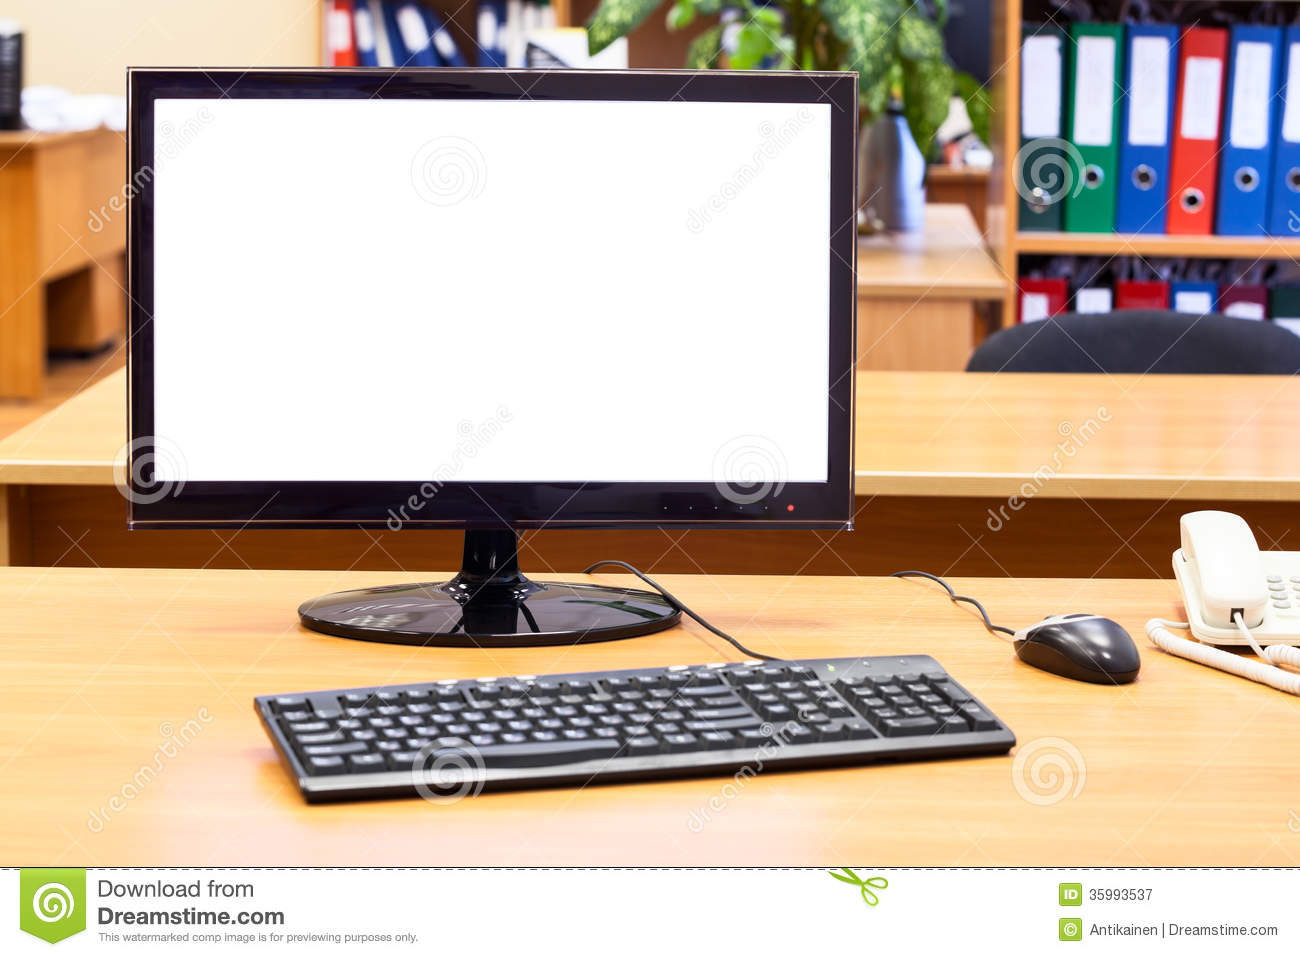 monitor tastatur computermaus auf dem schreibtisch lizenzfreie stockfotografie bild 35993537. Black Bedroom Furniture Sets. Home Design Ideas